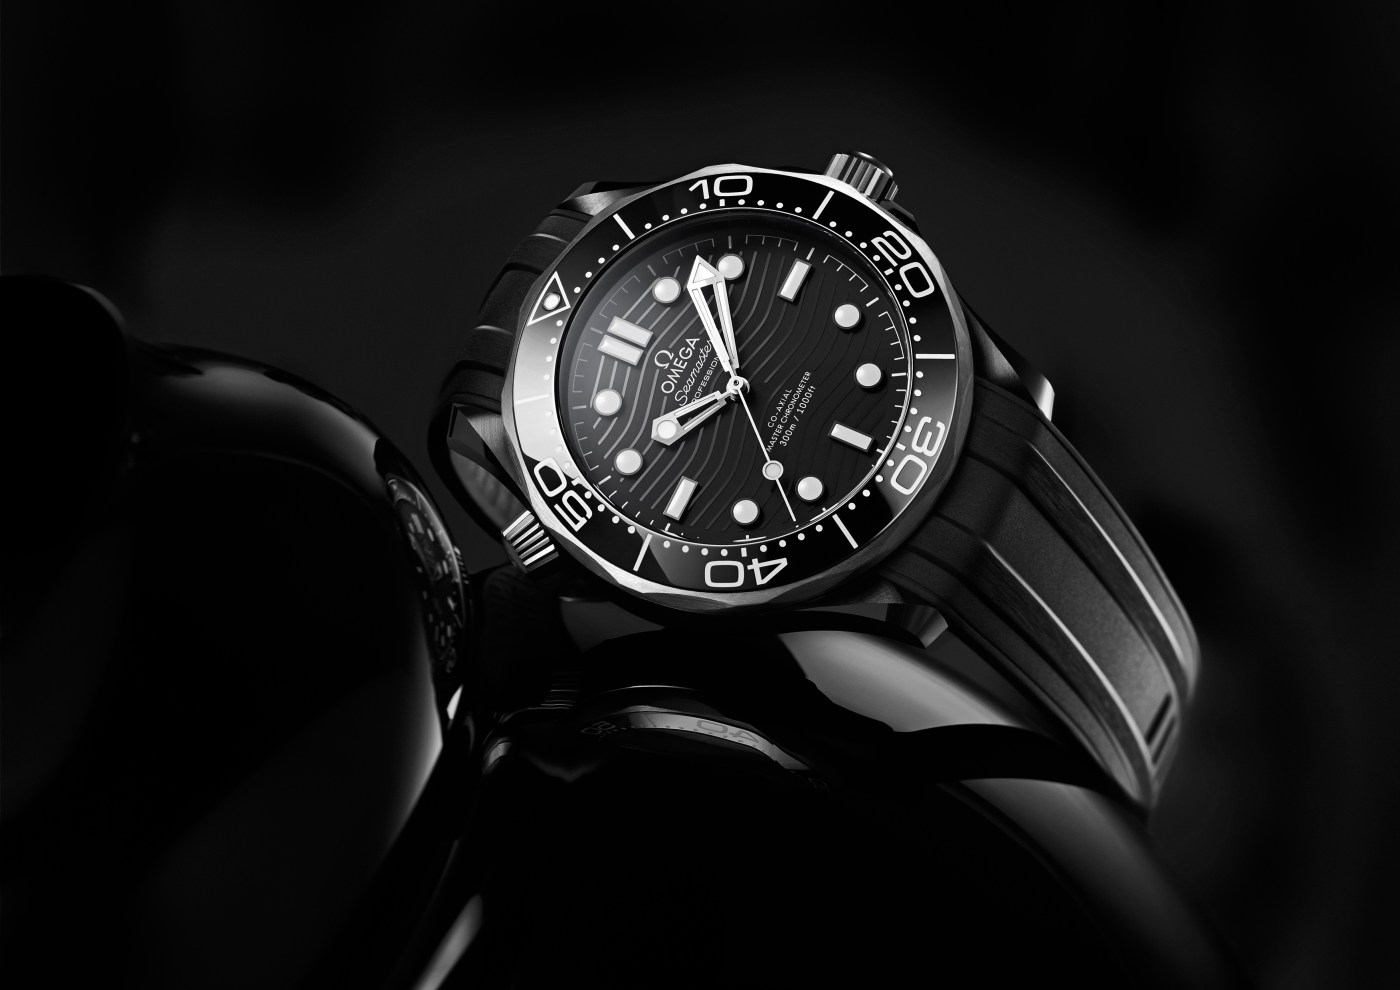 Omega Seamaster Diver 300M Black Ceramic side